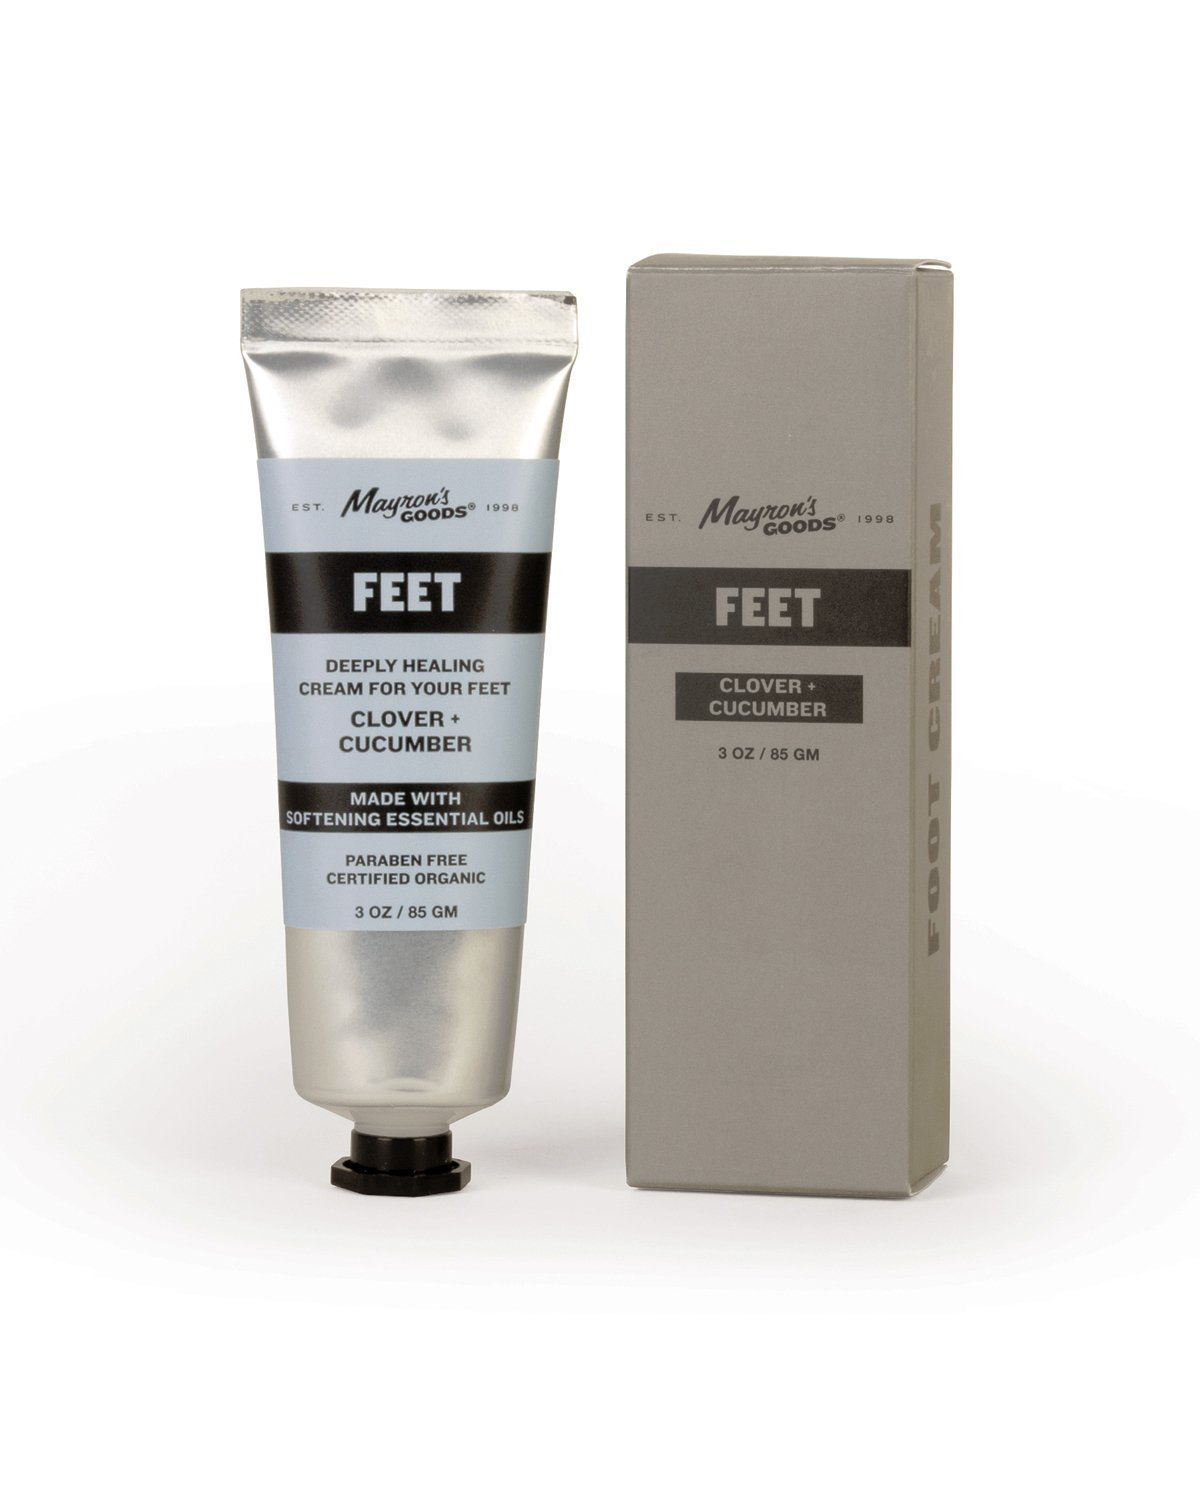 Clover-Cucumber Foot Cream by Mayron's Goods